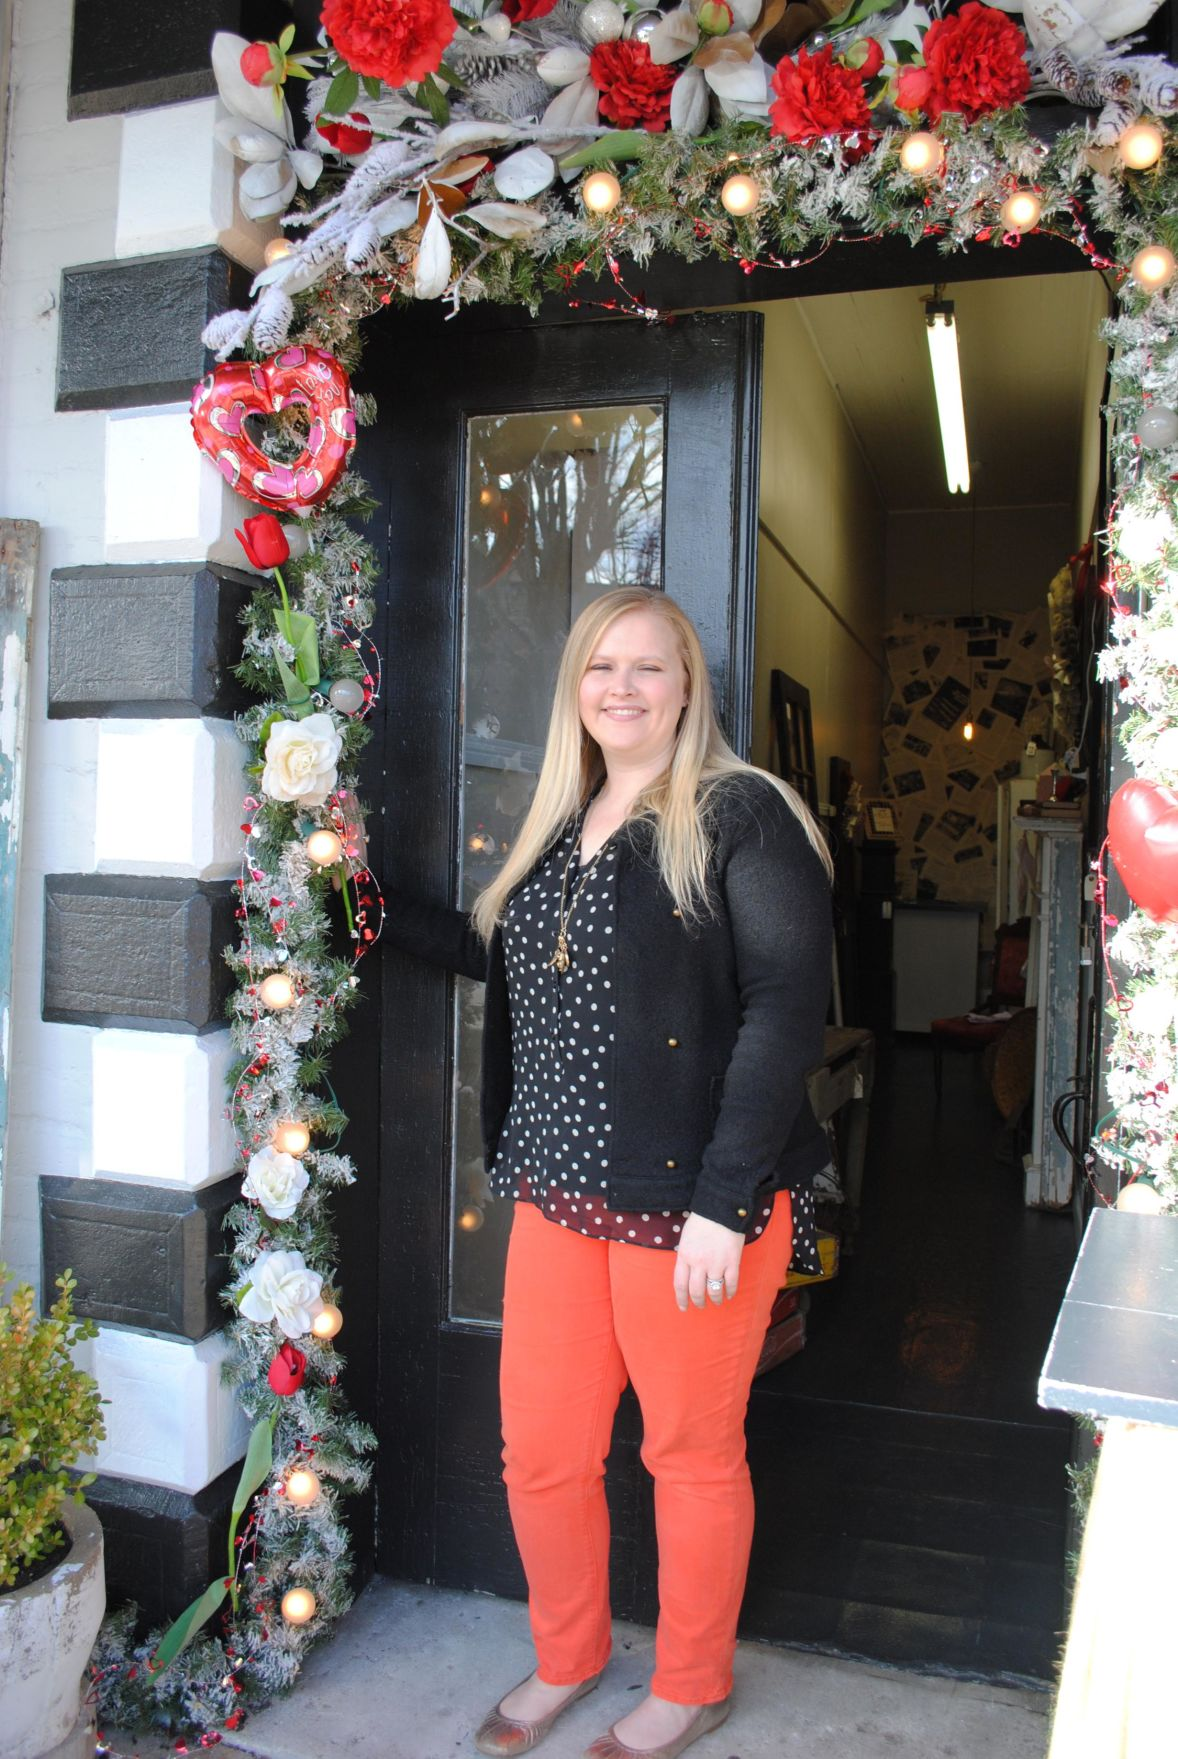 Architectural salvage, antique store opens